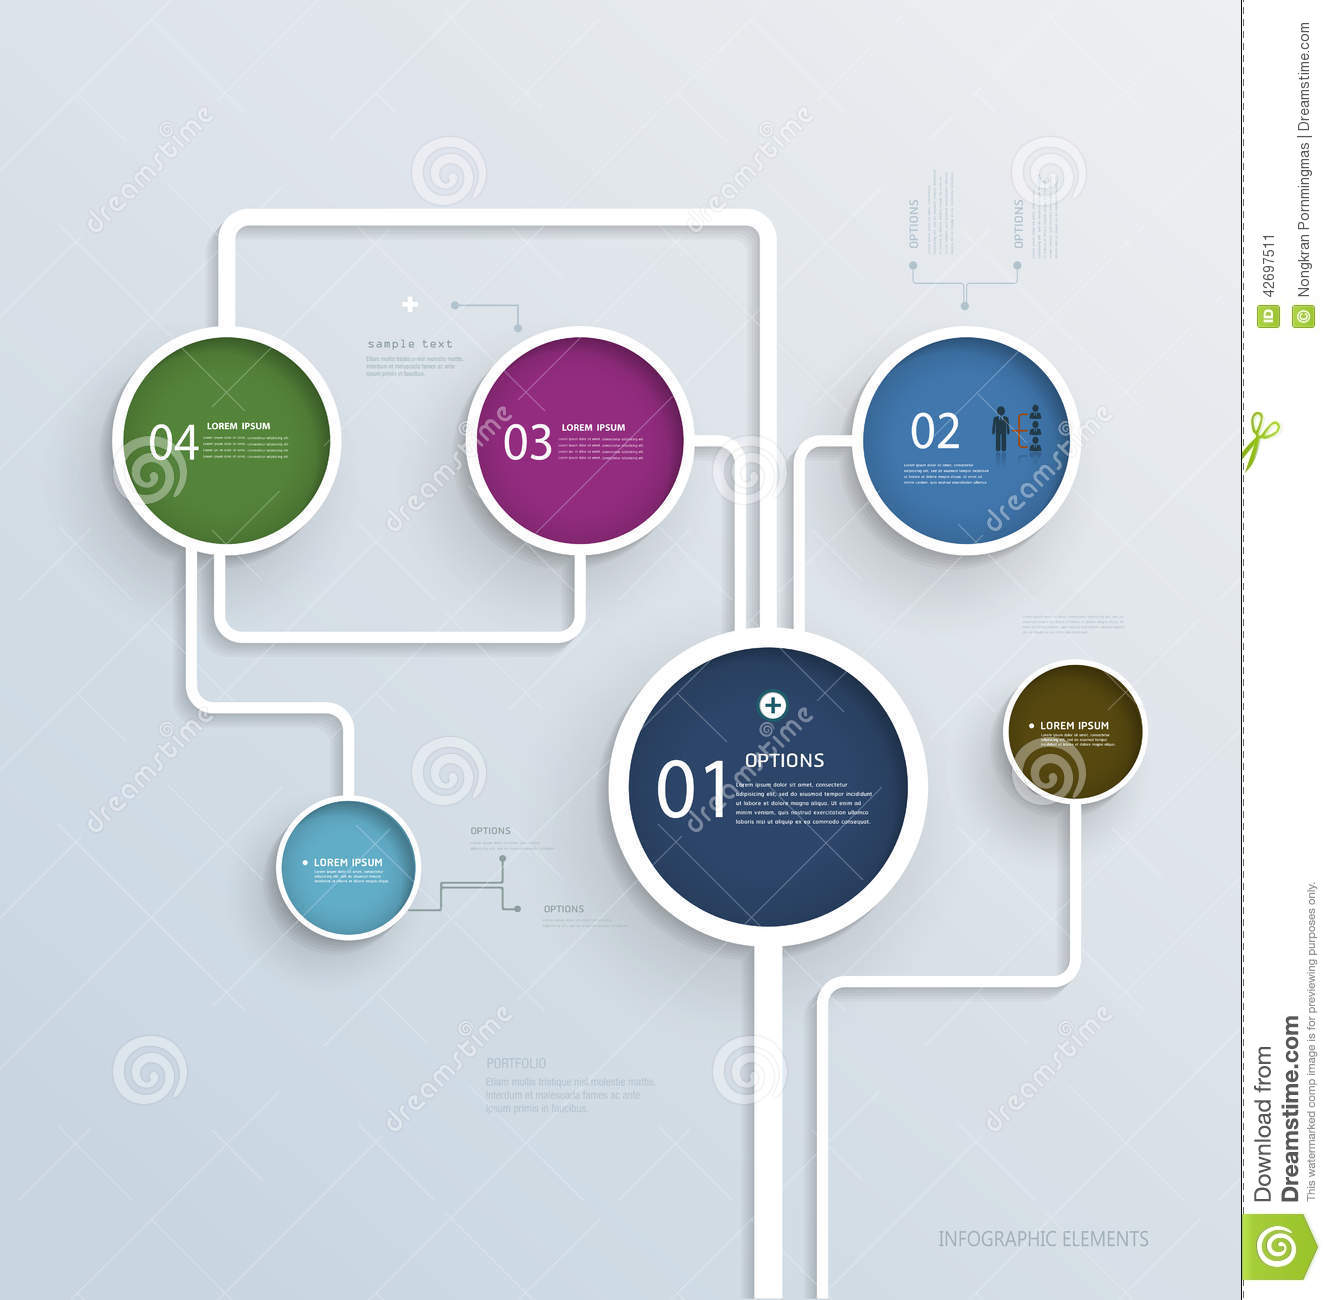 simple infographic elements design template stock vector